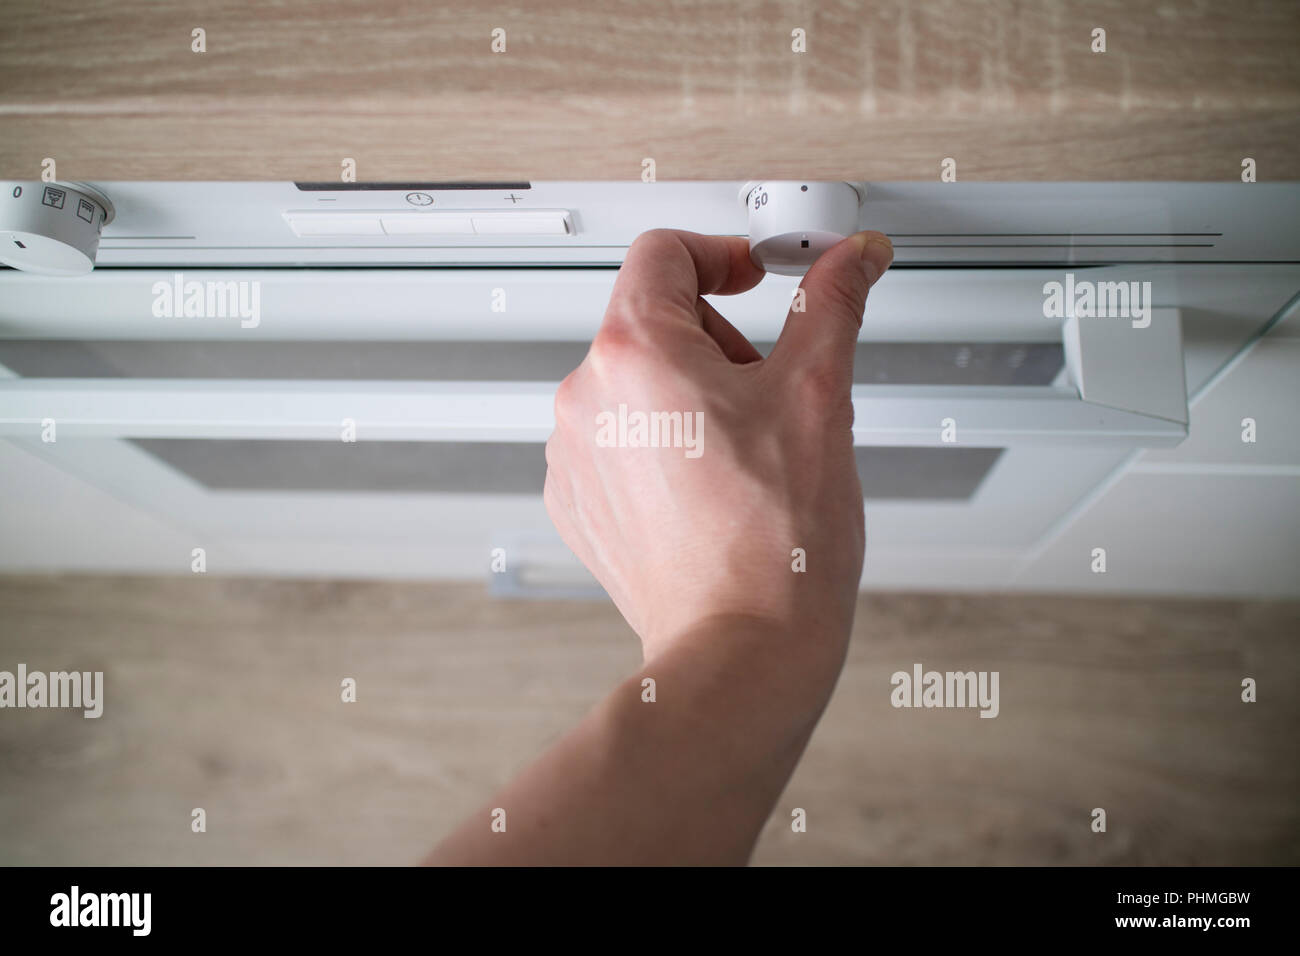 man hand setting temperature control on oven - Stock Image